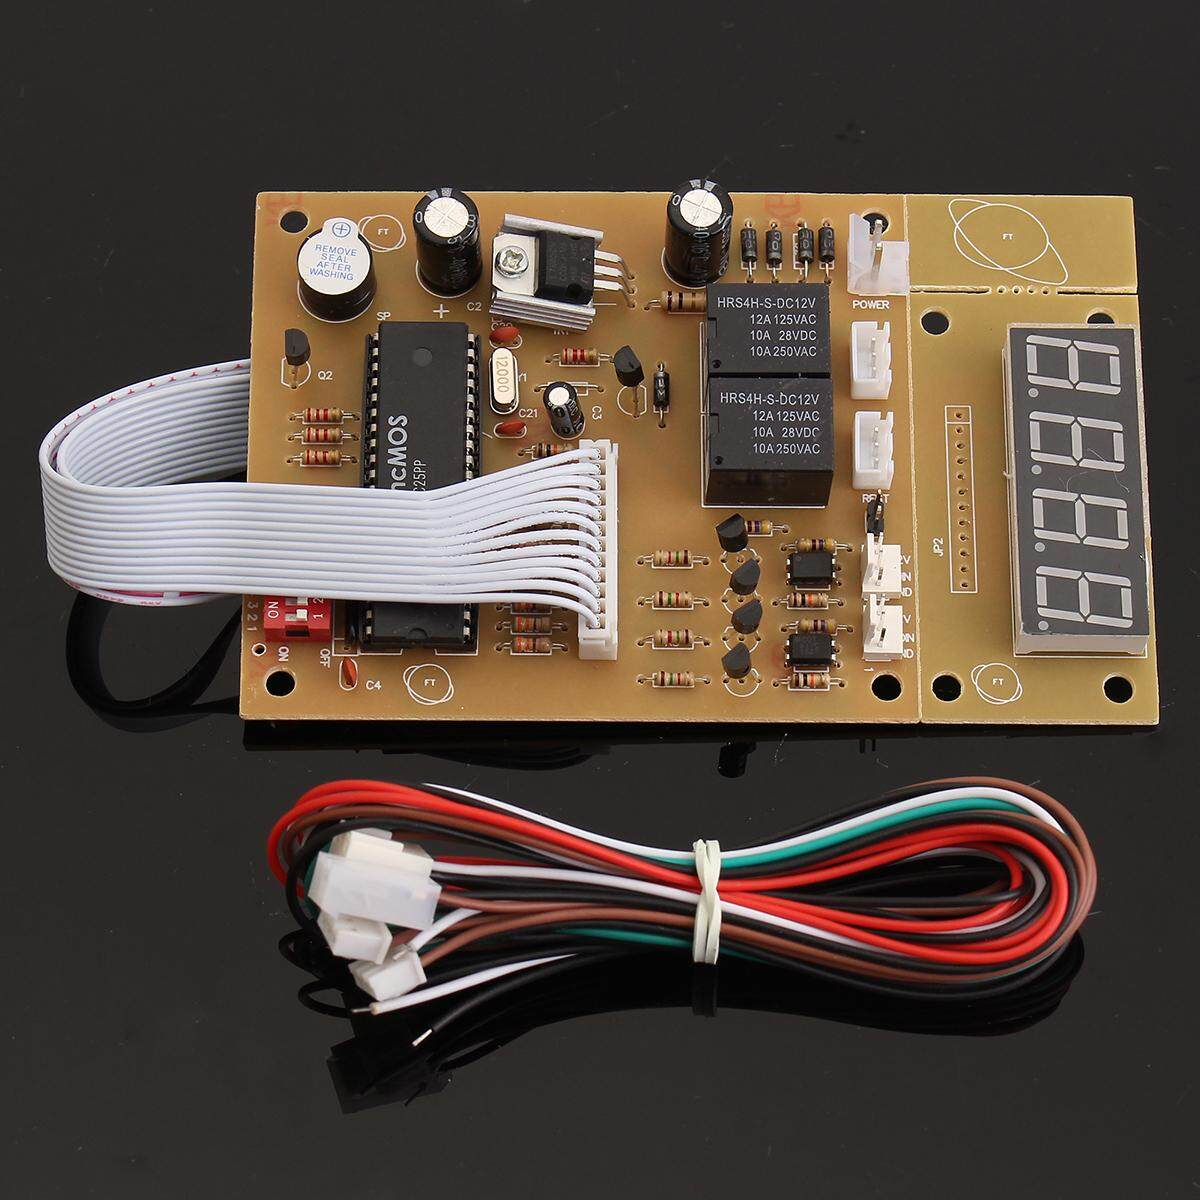 Cek Harga Baru 12v Lcd Display Time Control Timer Board Power Supply Multi Wiring For Coin Acceptor Intl